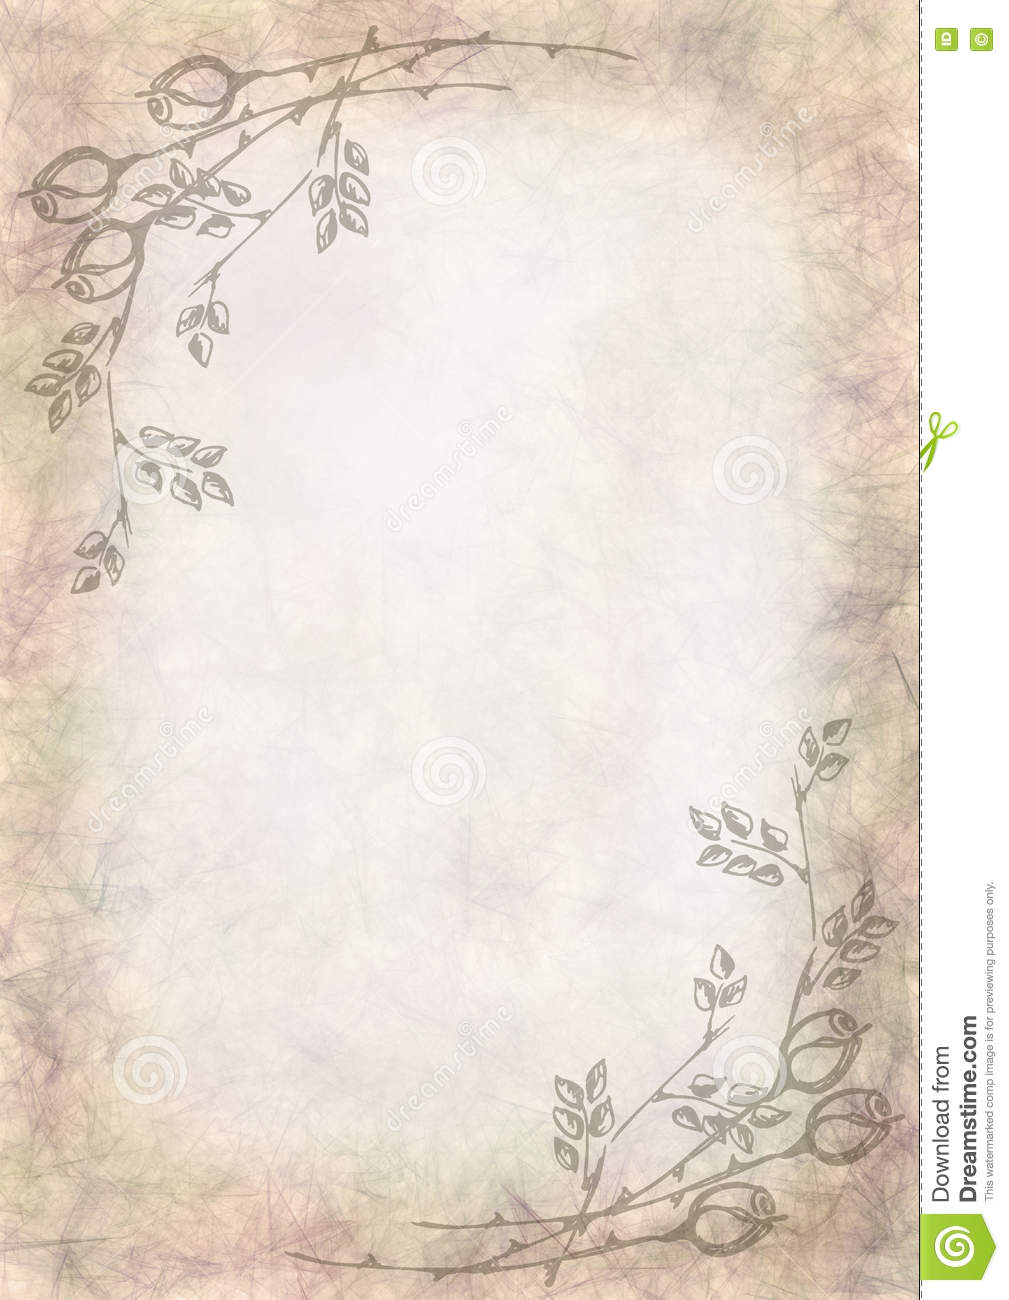 hand drawn textured floral background crumpled paper with rose and